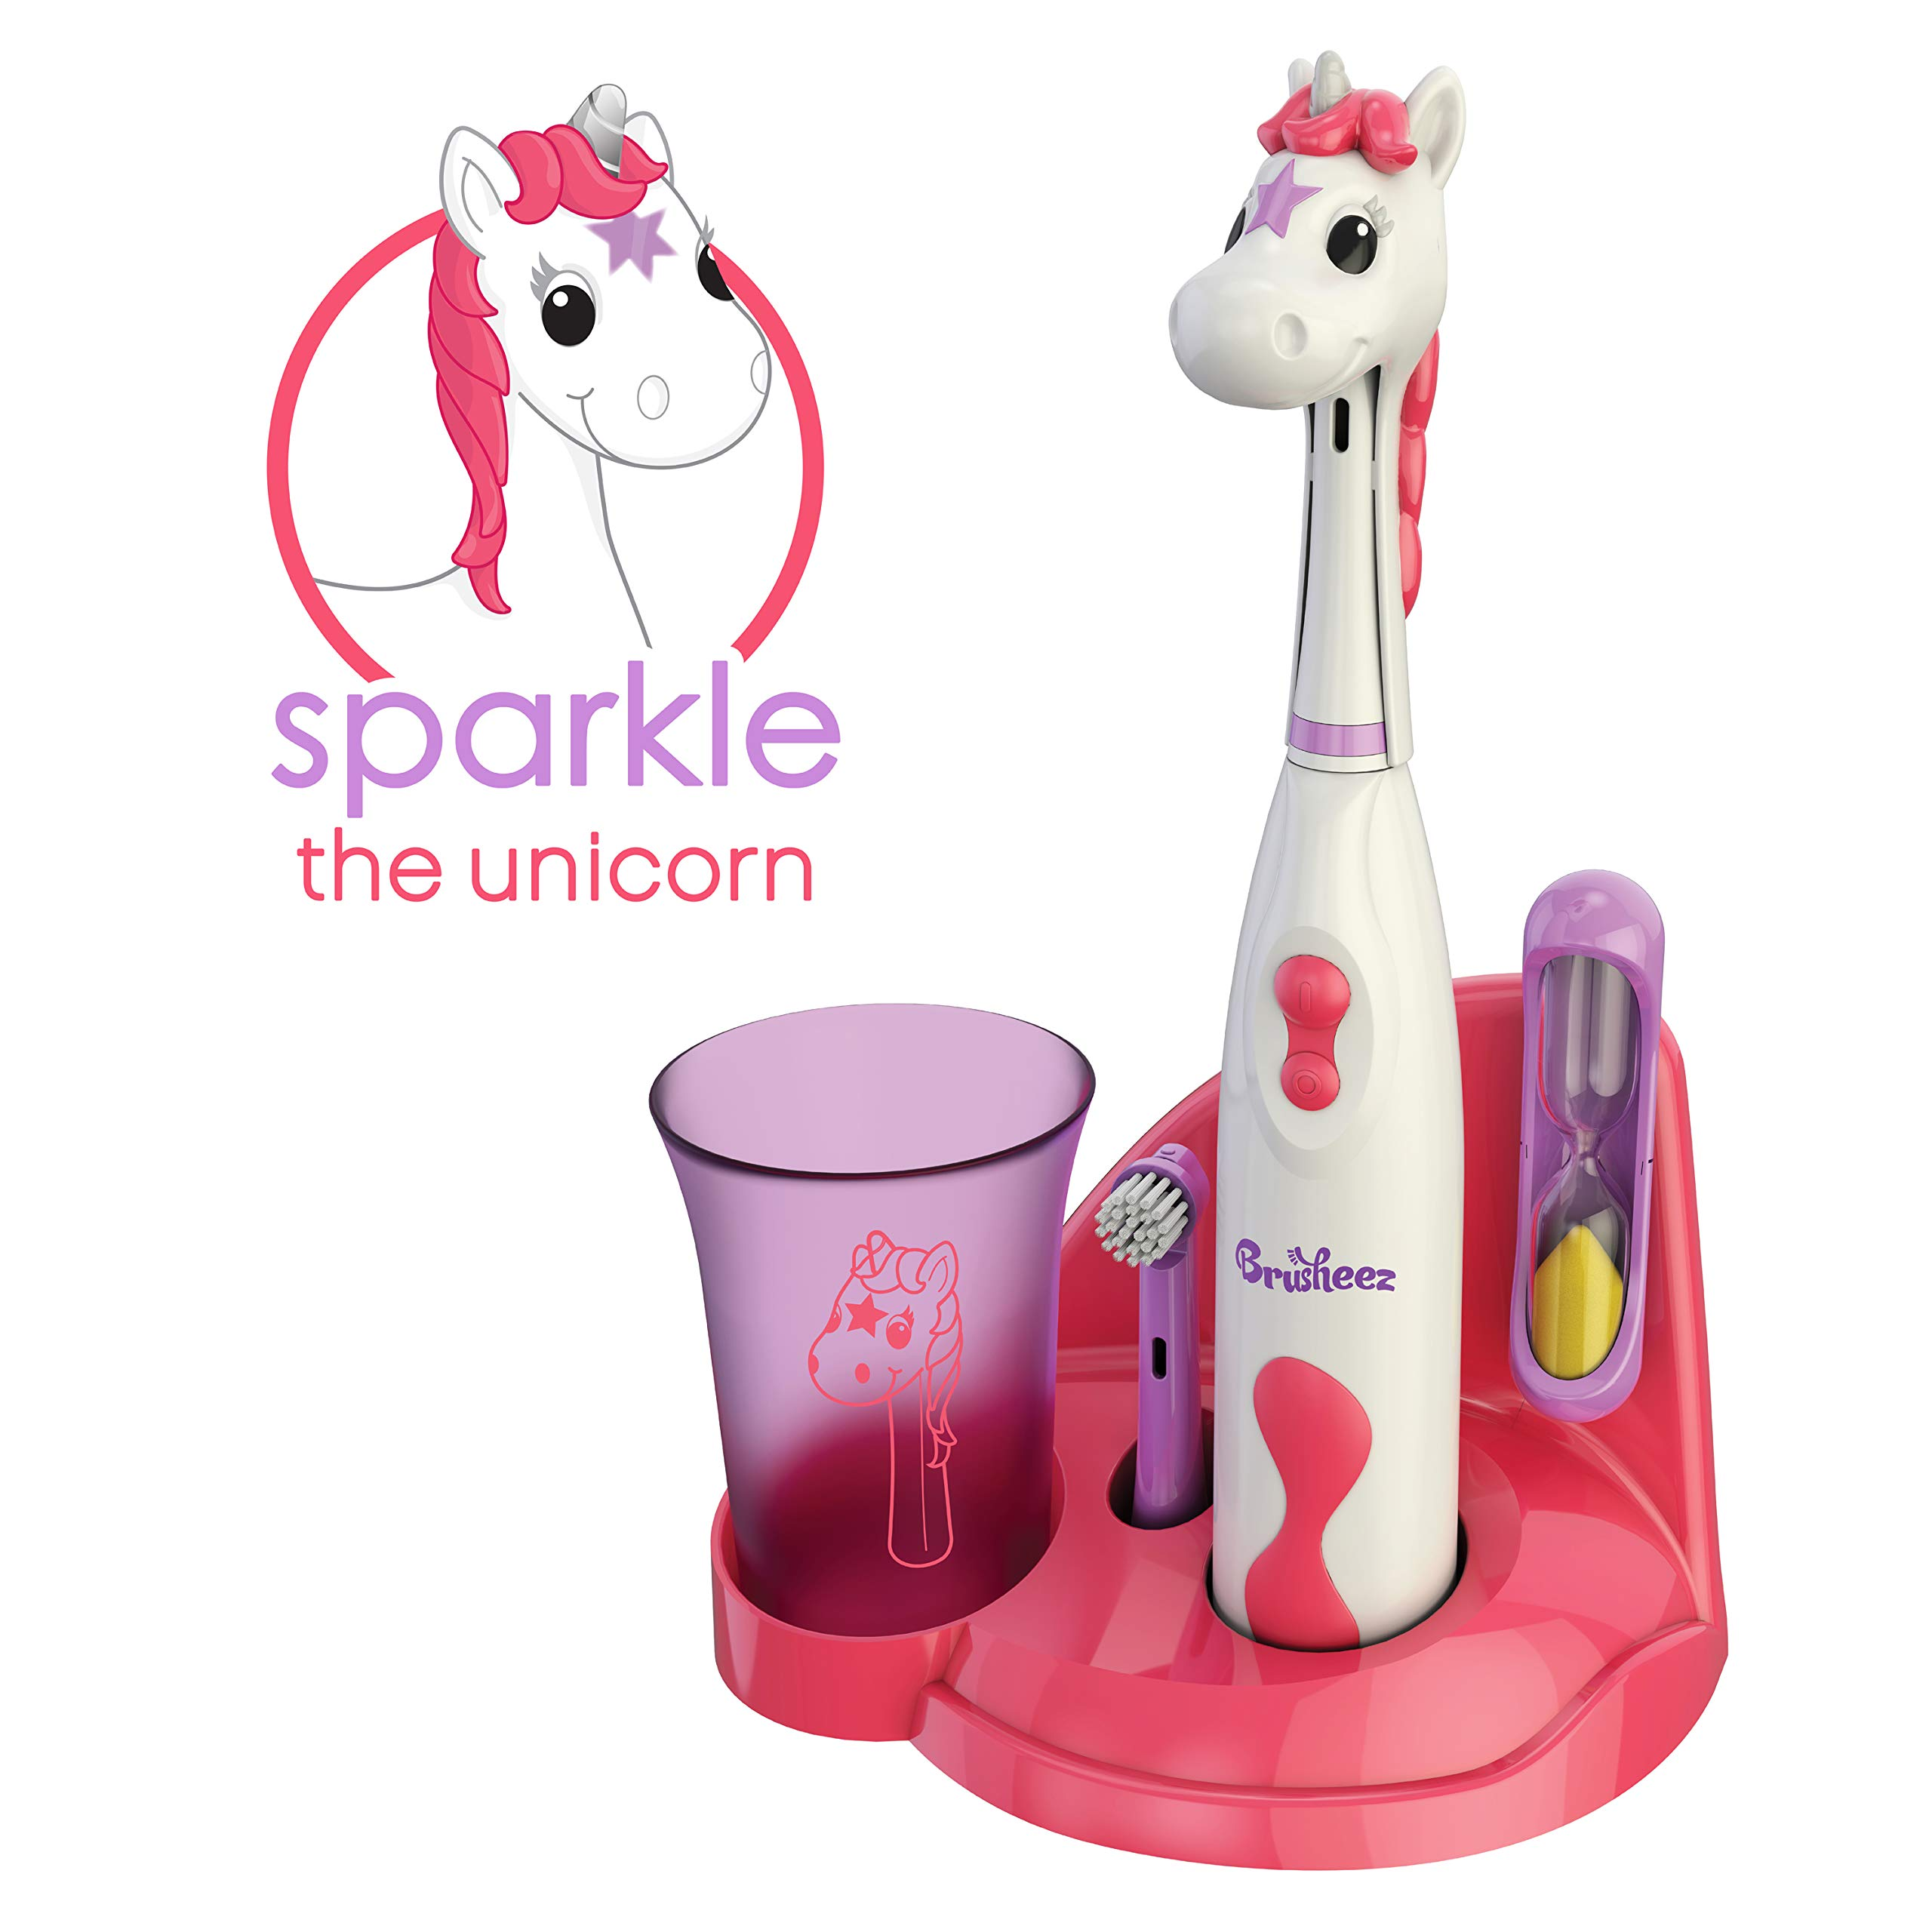 Brusheez Kid's Electric Toothbrush Set - Sparkle the Unicorn - New & Improved with Softer Bristles, Easy-Press Power Button, 2 Brush Heads, Cute Animal Cover, Sand Timer, Rinse Cup & Storage Base by Brusheez (Image #1)